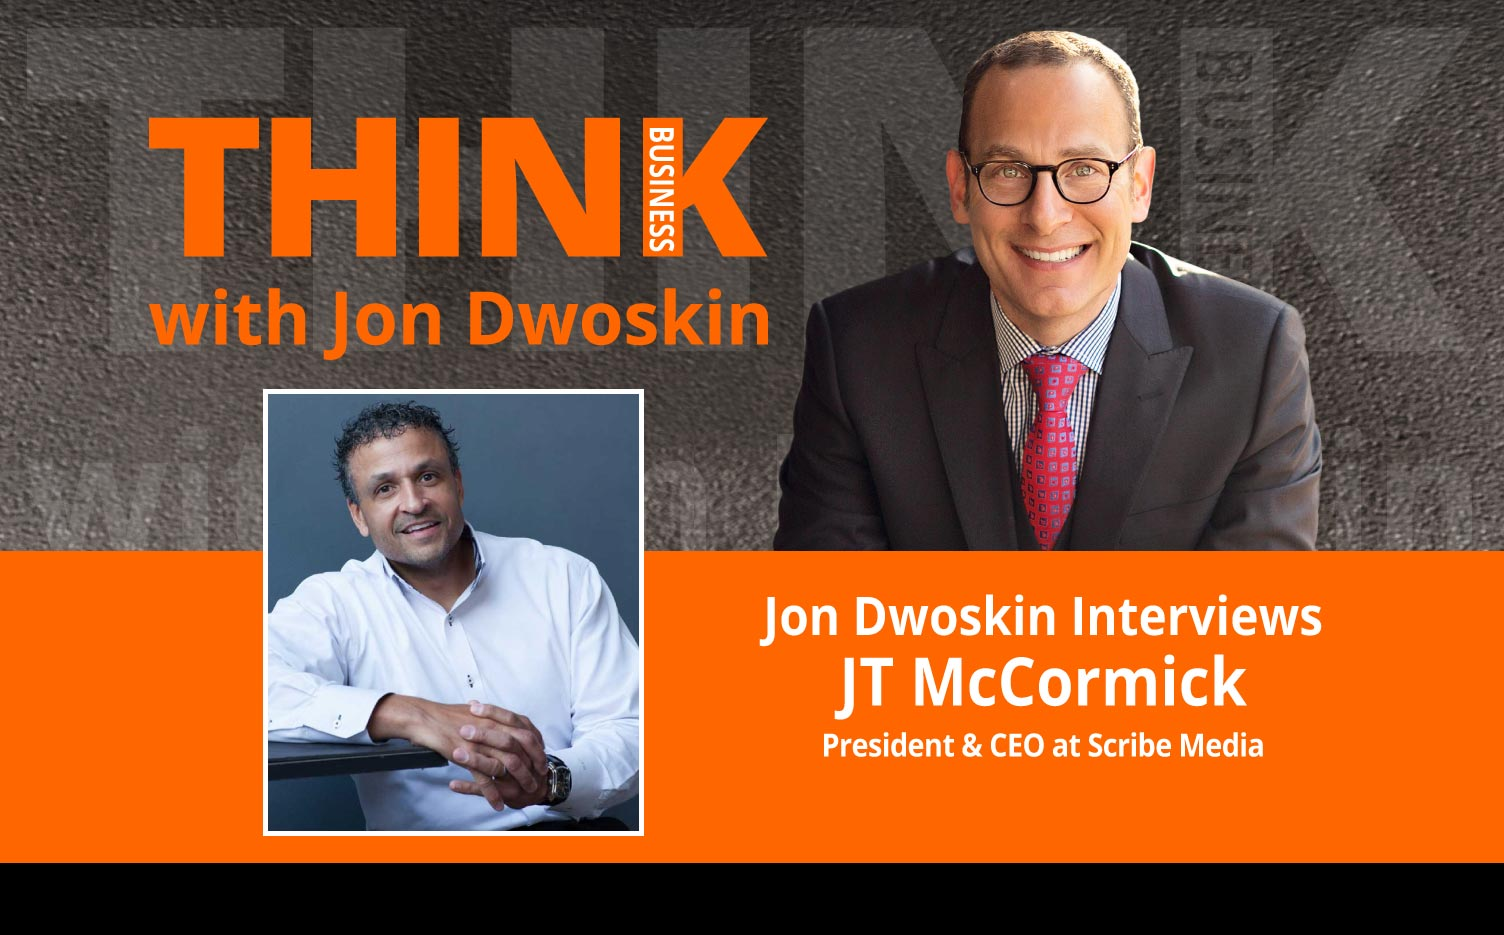 THINK Business Podcast: Jon Dwoskin Interviews JT McCormick, President & CEO at Scribe Media